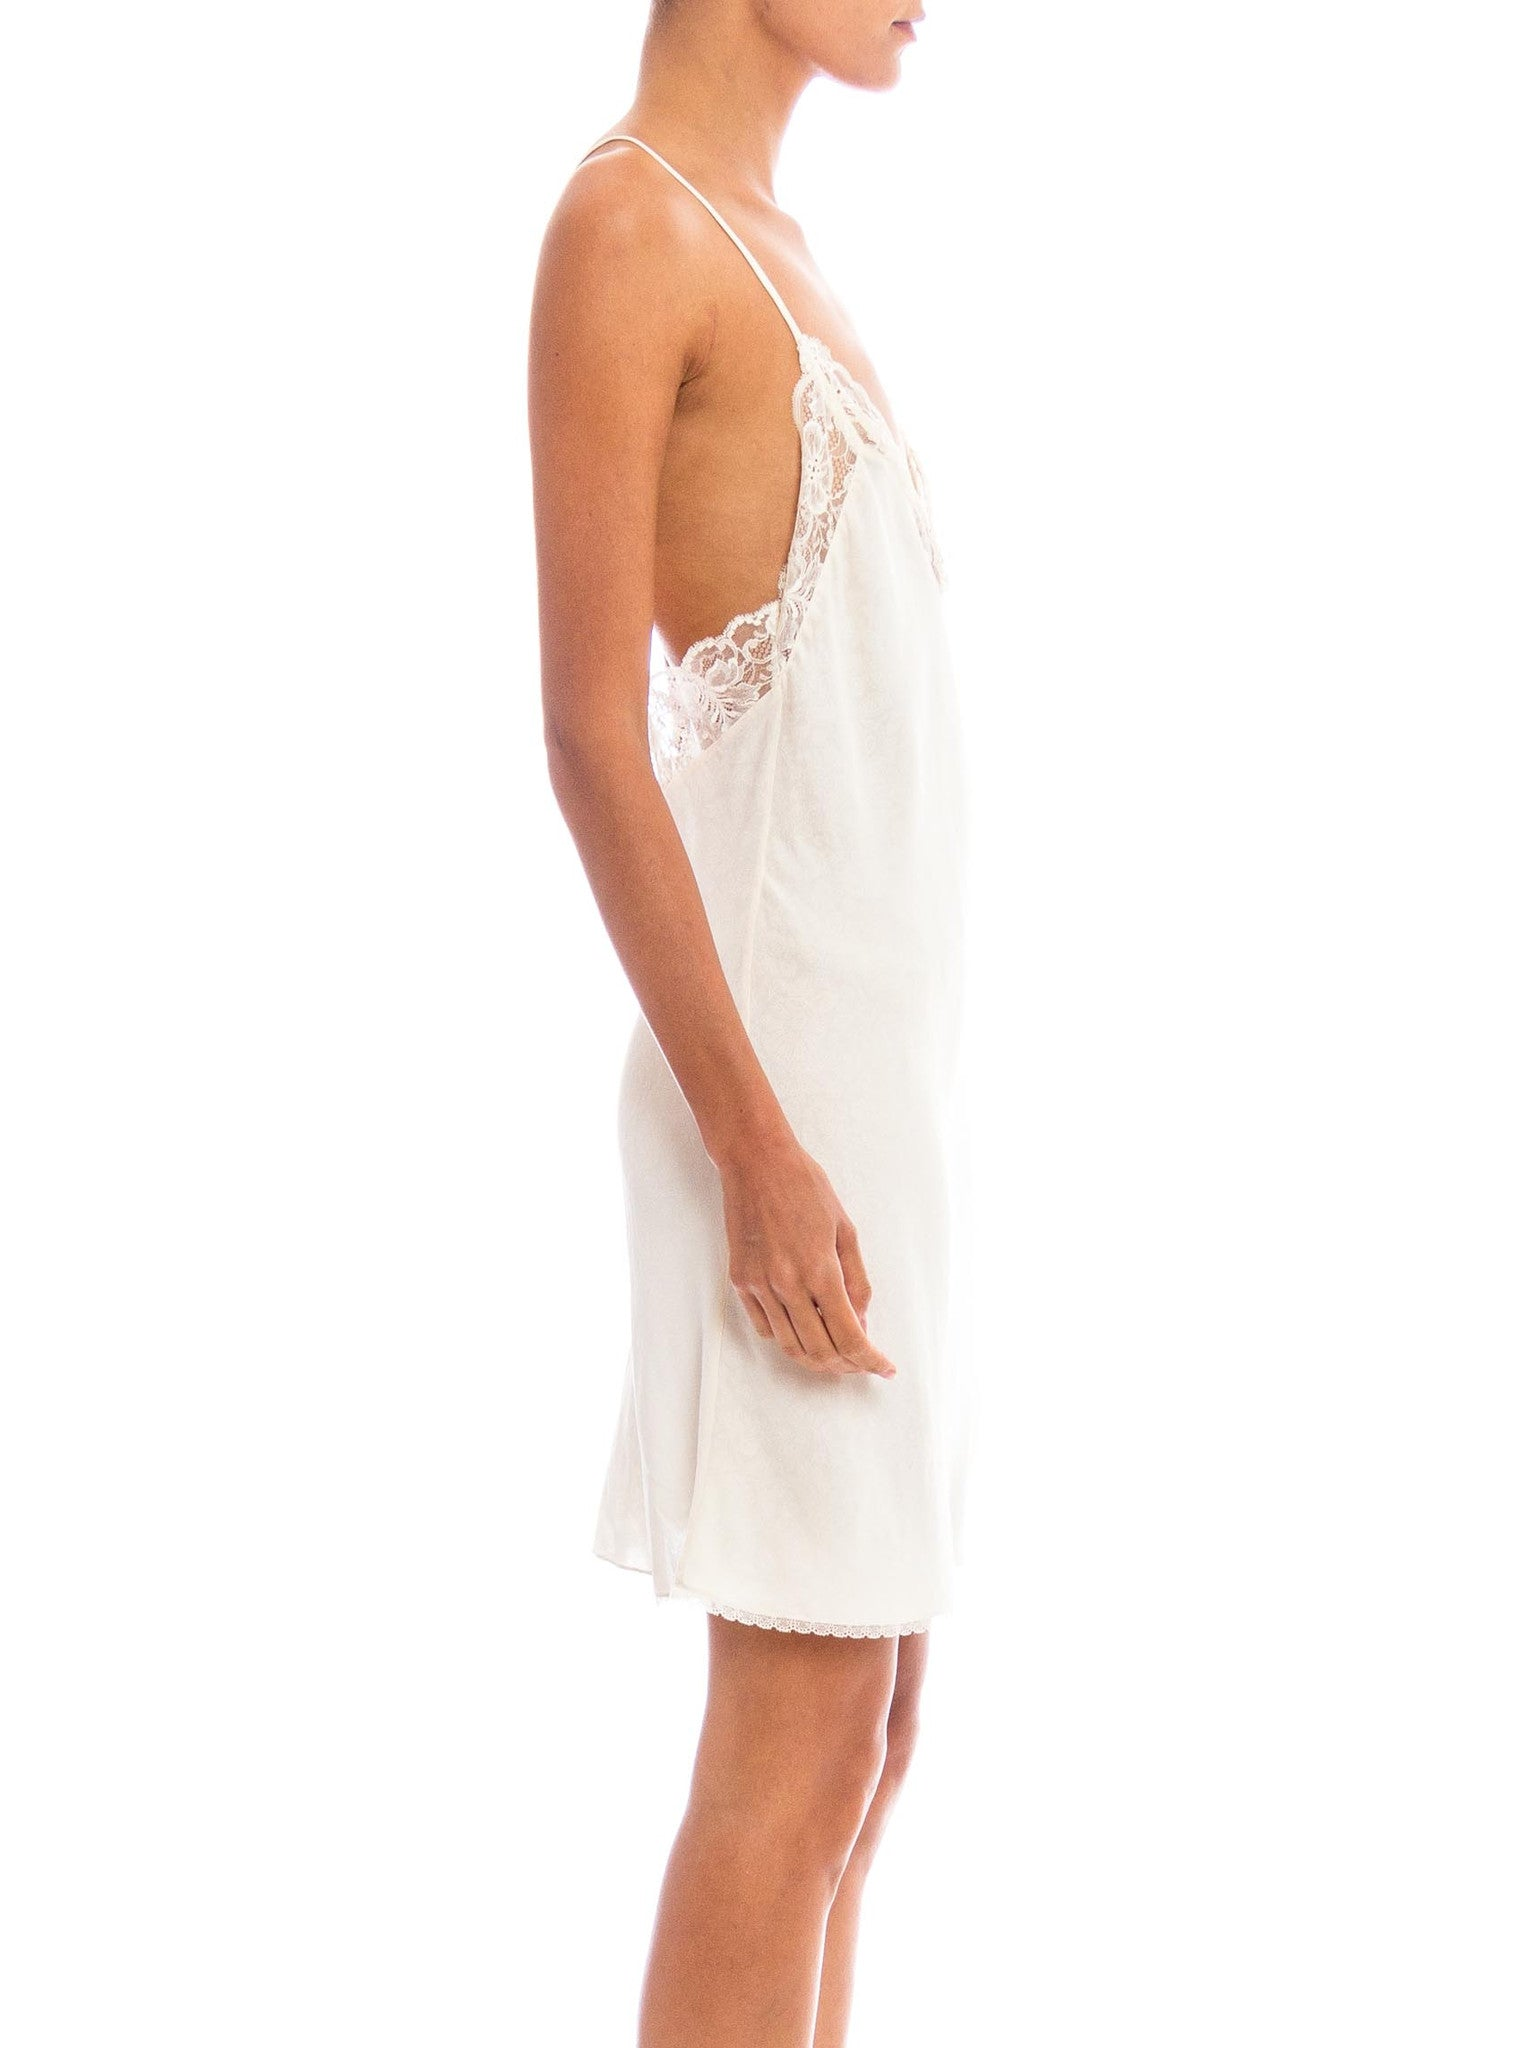 1980S GIANNI VERSACE White Bias Cut Silk & Lace Loosely Paisley Printed Slip Dress